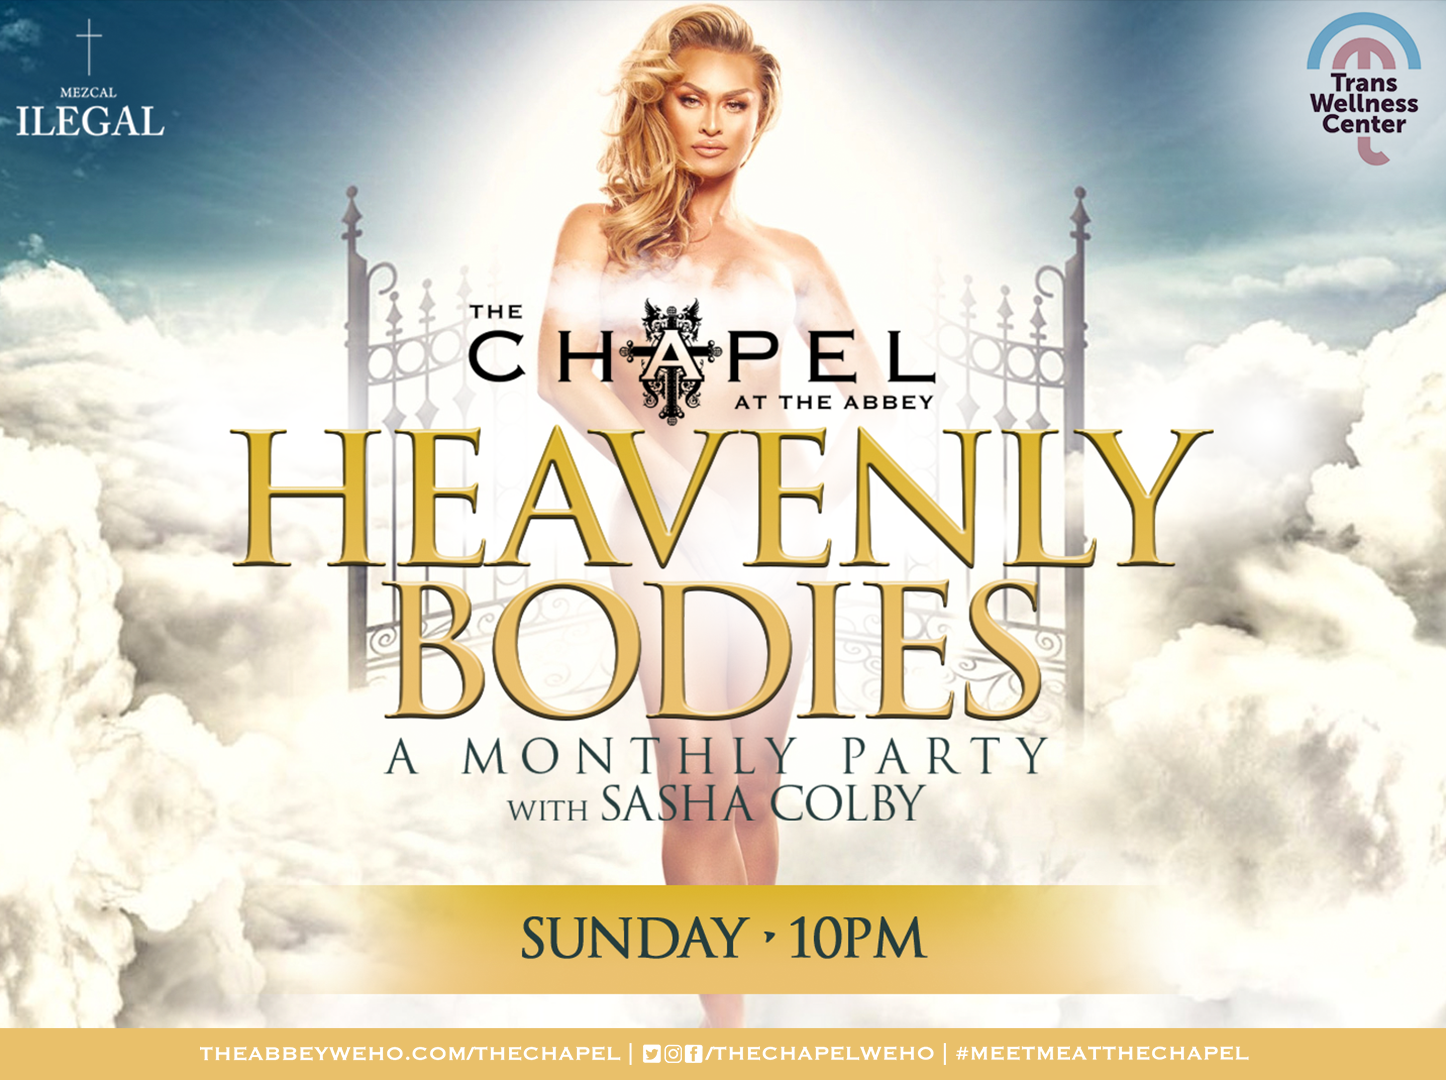 A Monthly Transgender At The Chapel